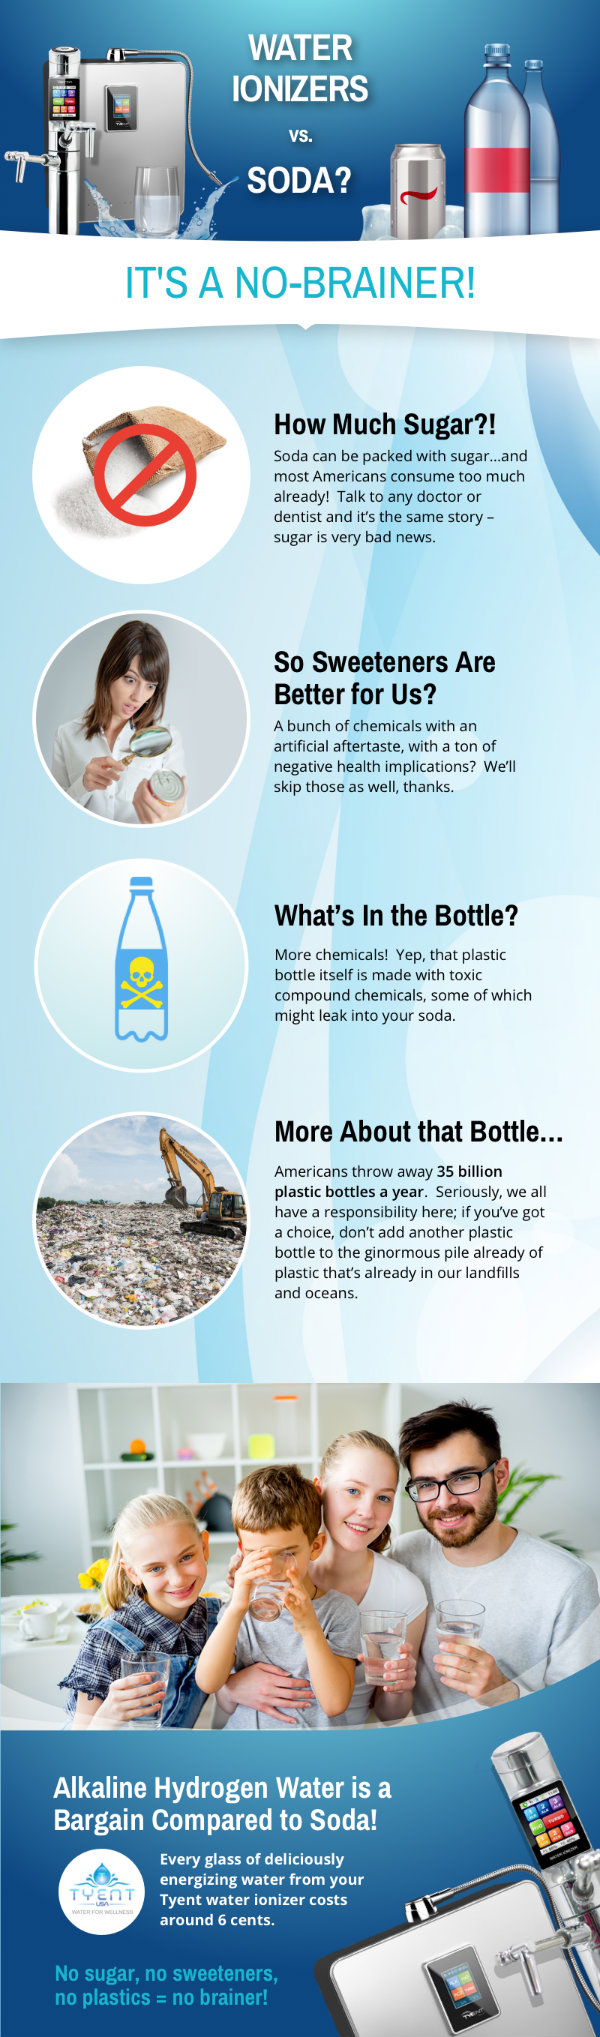 Water Ionizers vs Soda? It's a No-Brainer! [Infographic]